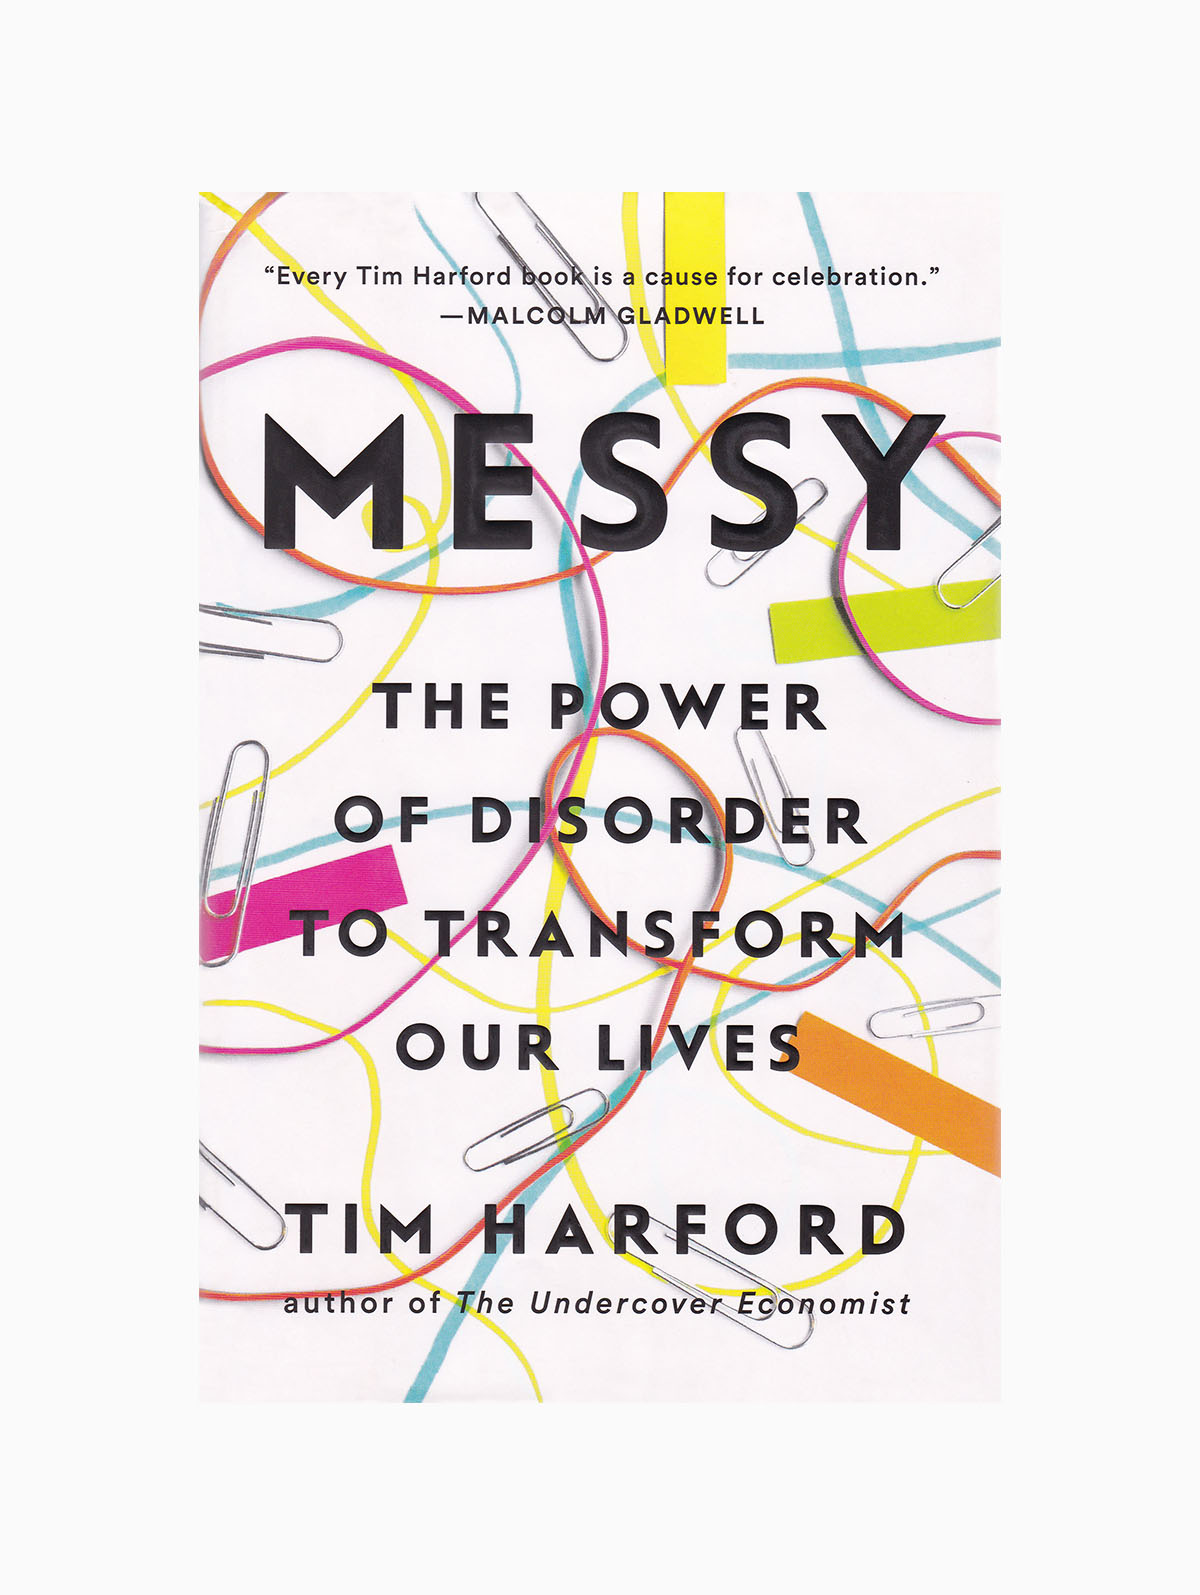 Messy (2016) currently has a rating of 3.92/5 on goodreads (as of April 2019). -